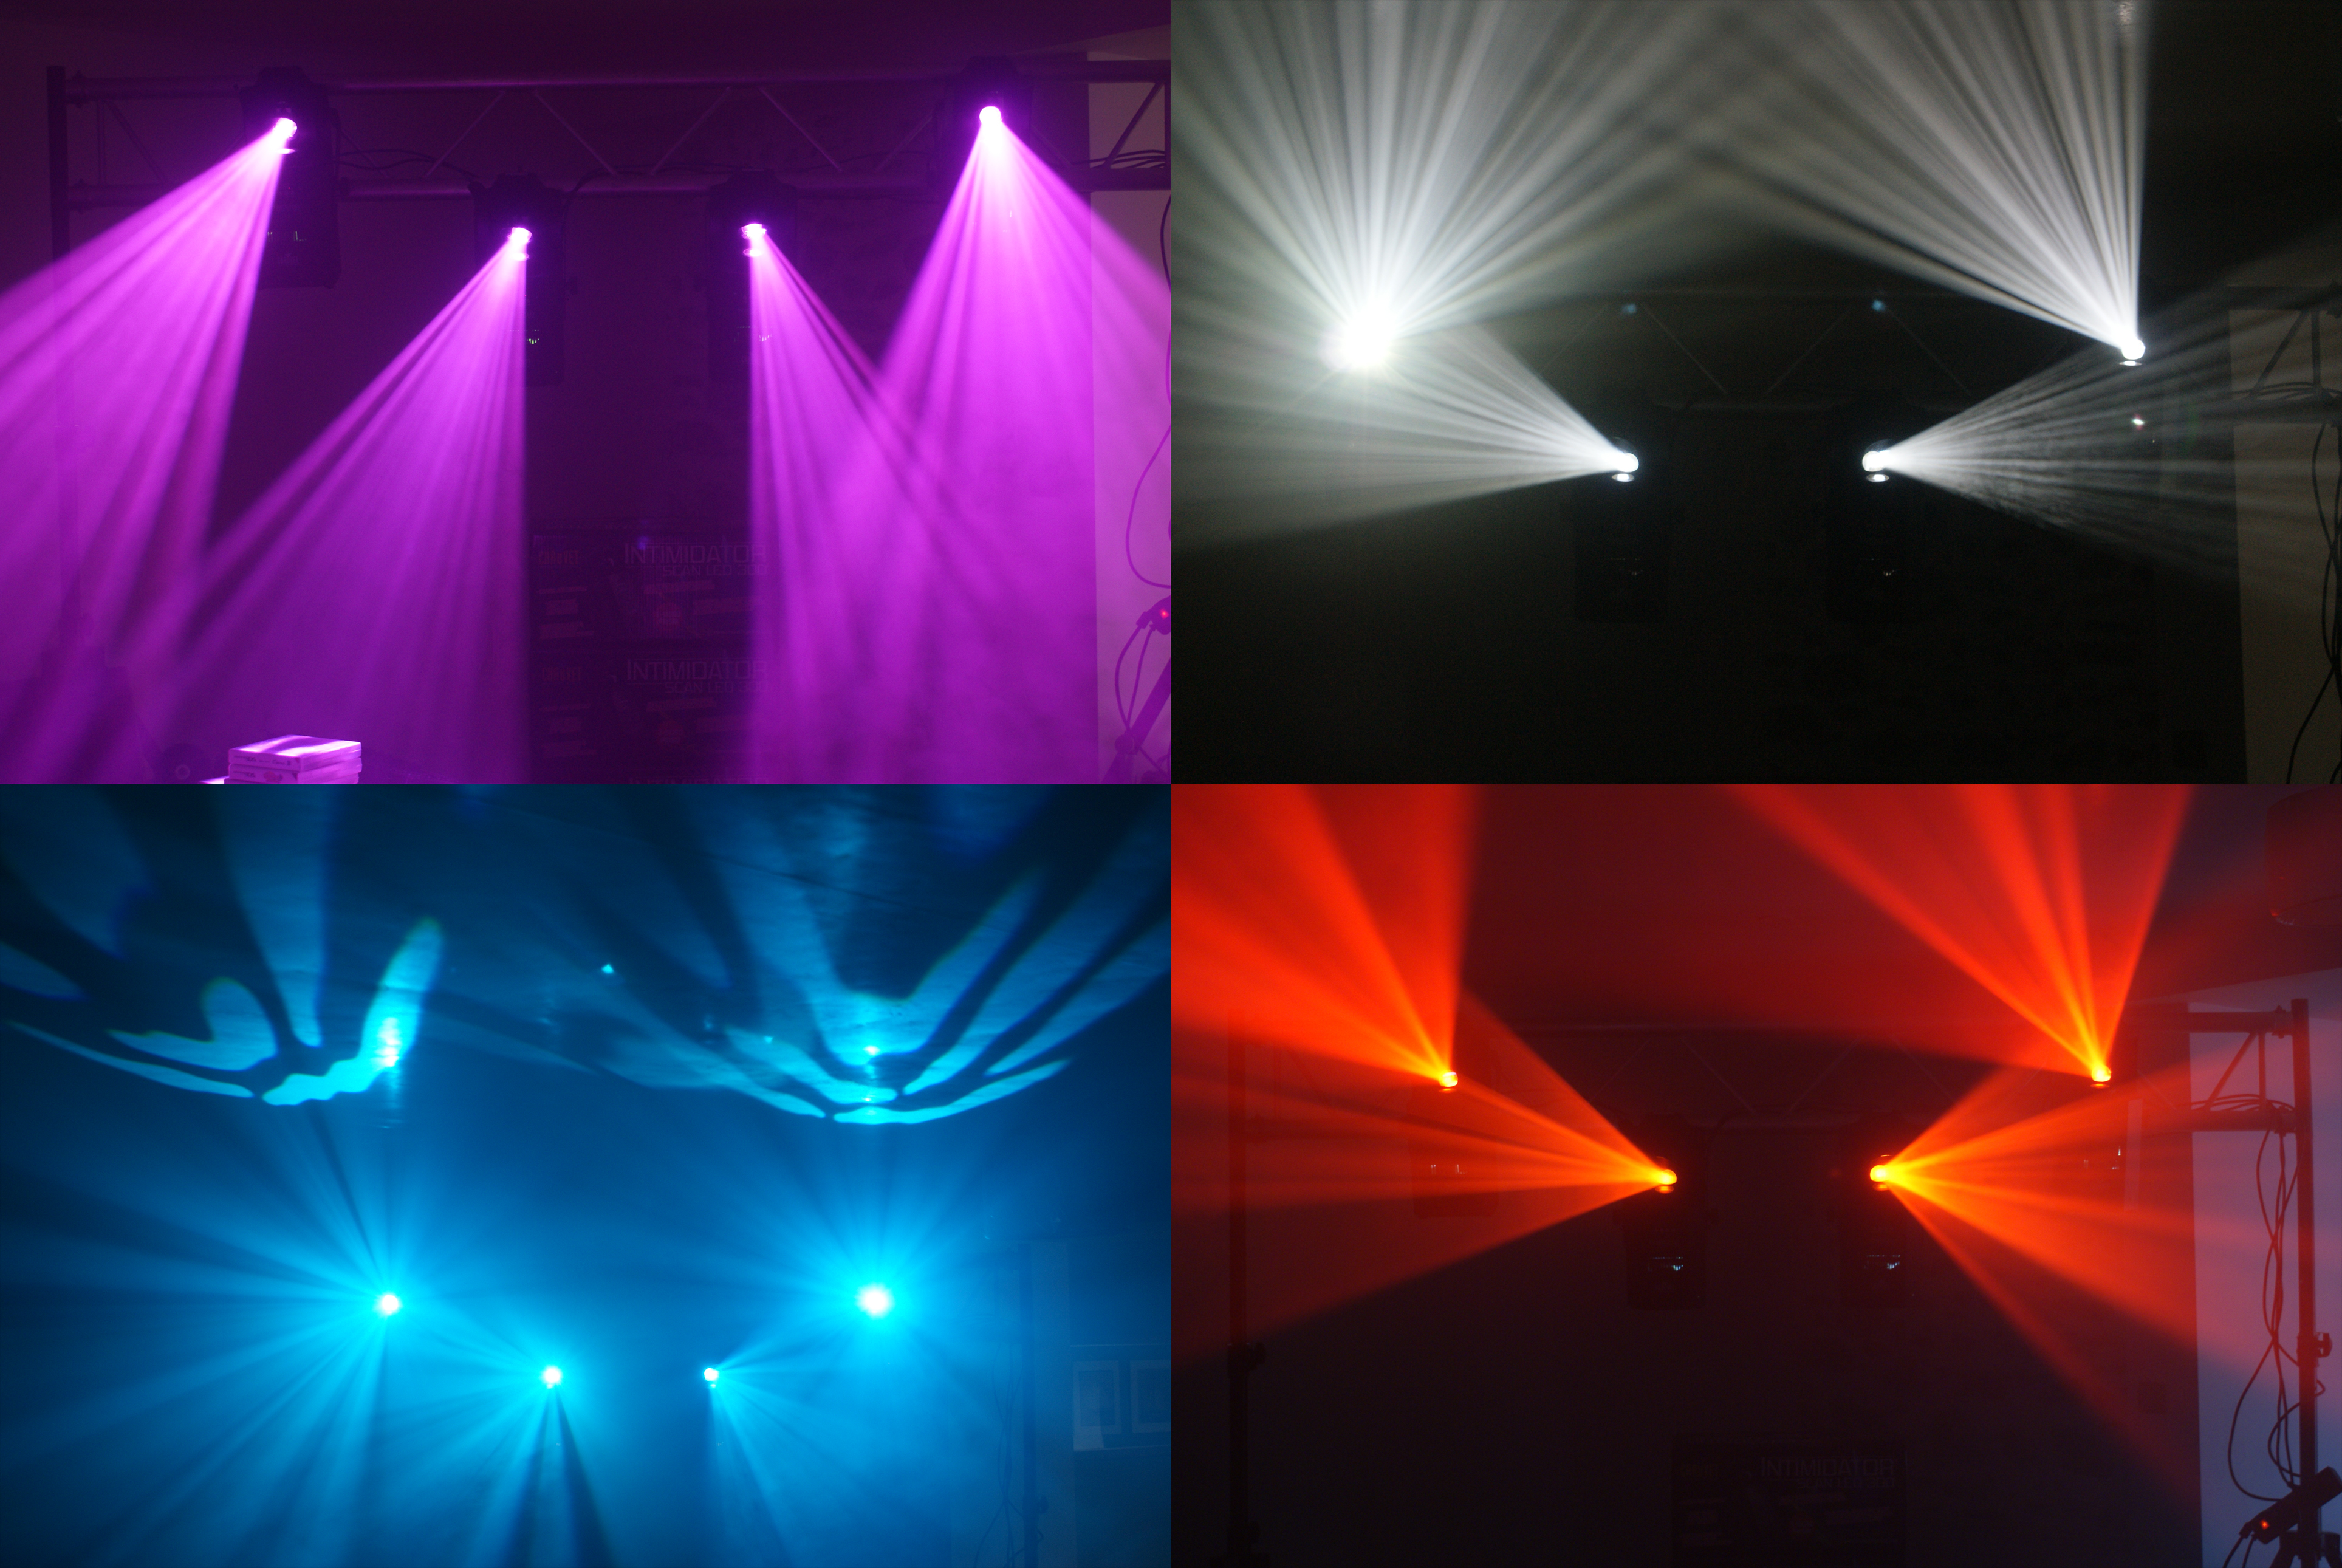 chauvet usb dj travel image shocker itm light led detailed bag w clamp stobe lighting packages panel